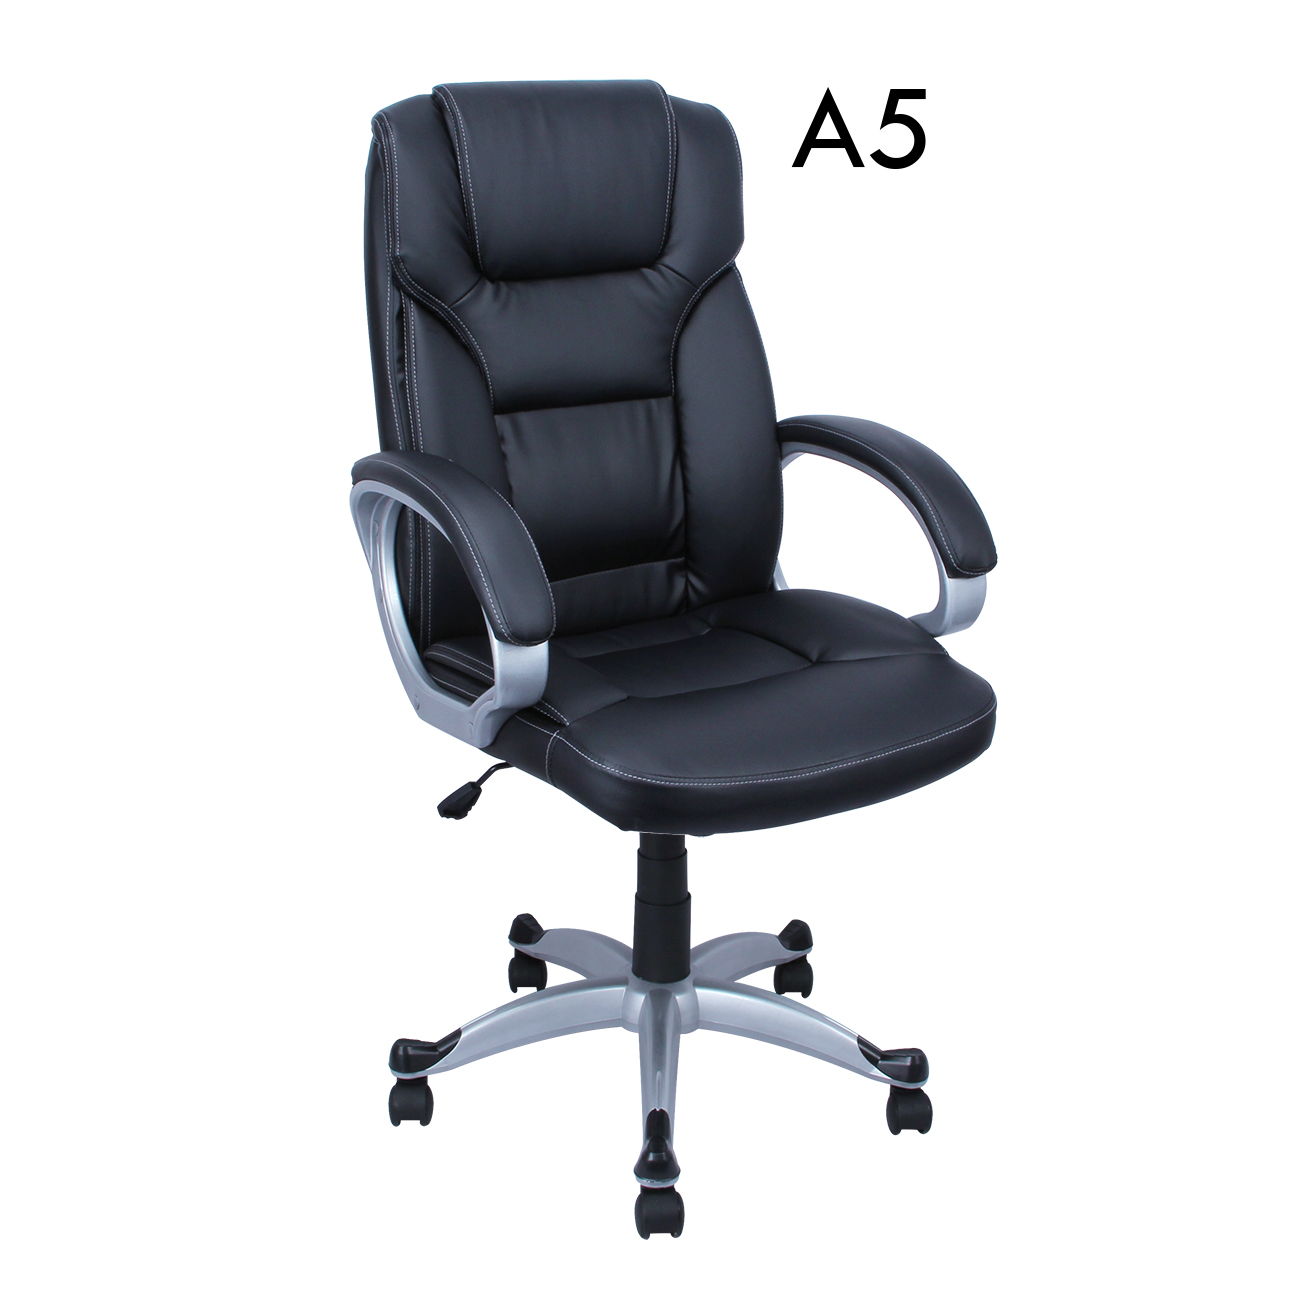 computer chair back outdoor counter high table and chairs pu leather executive ergonomic office desk